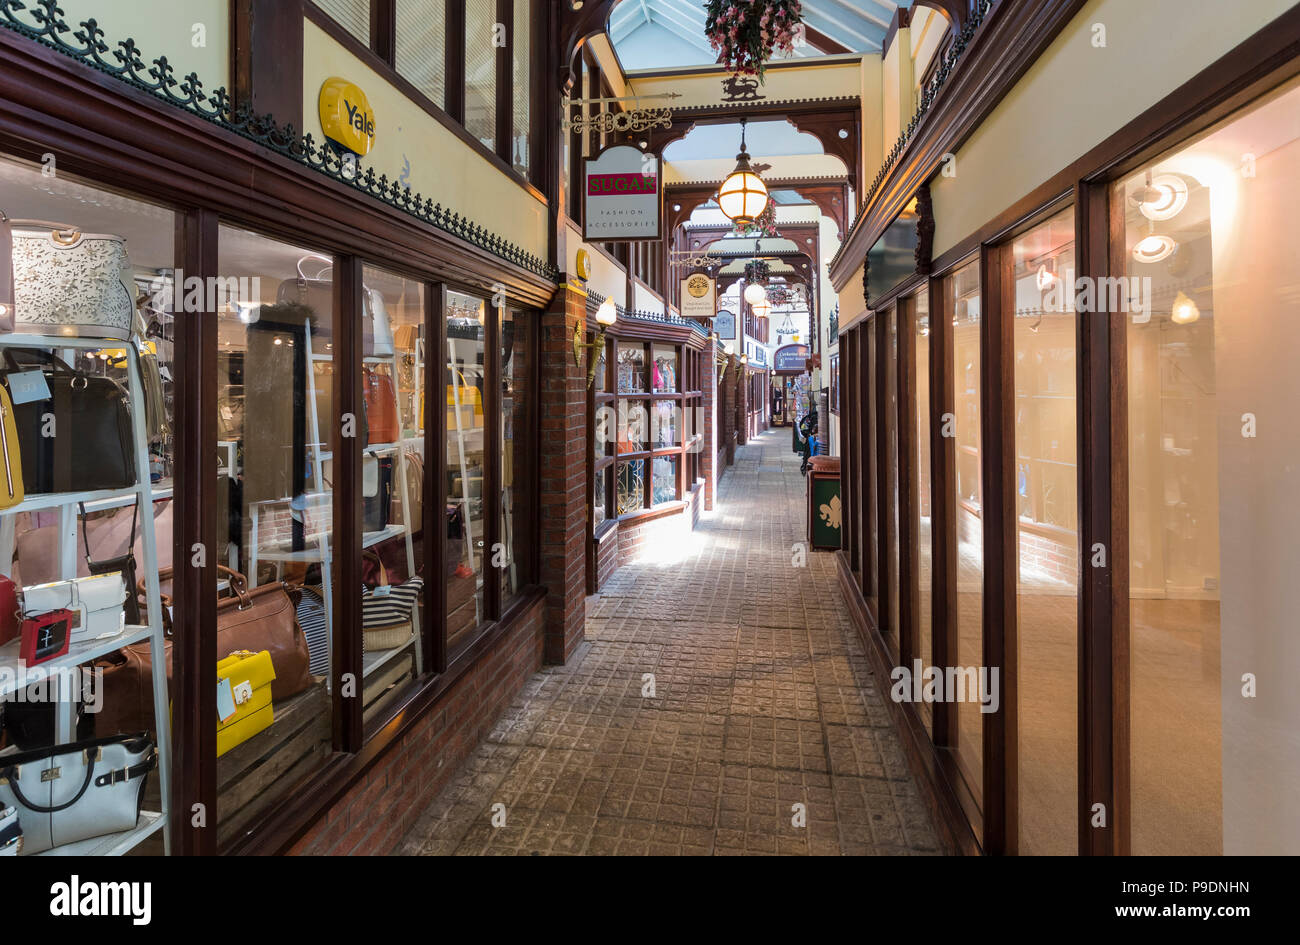 Interior of Arundel Shopping Arcade (AKA The Old Printing Works Arcade), a small historic British shopping mall in Arundel, West Sussex, UK. - Stock Image